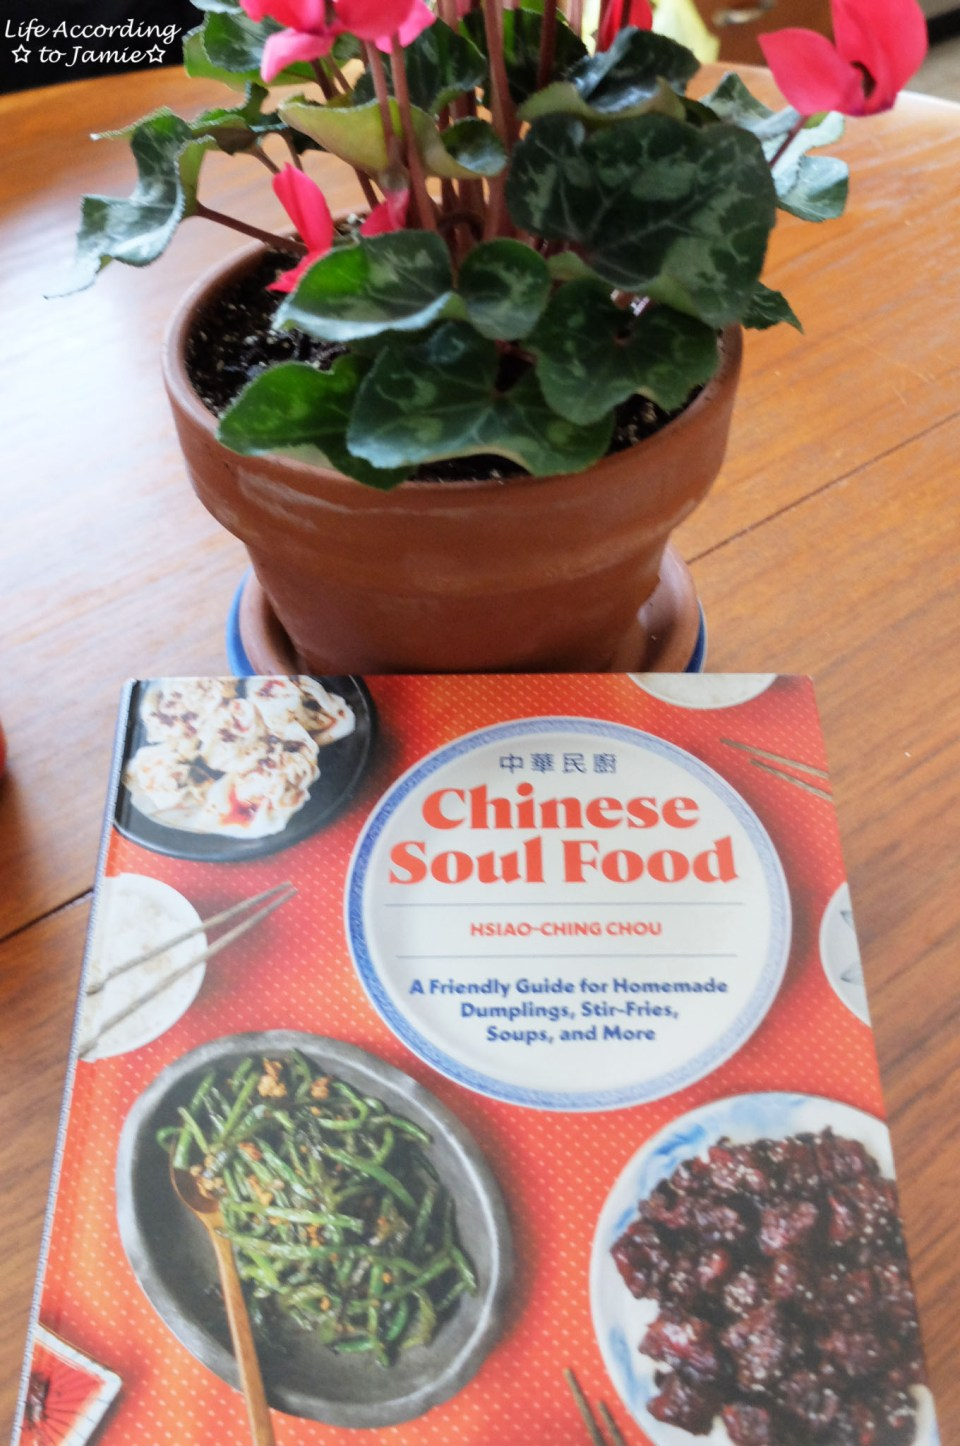 Chinese Soul Food cookbook